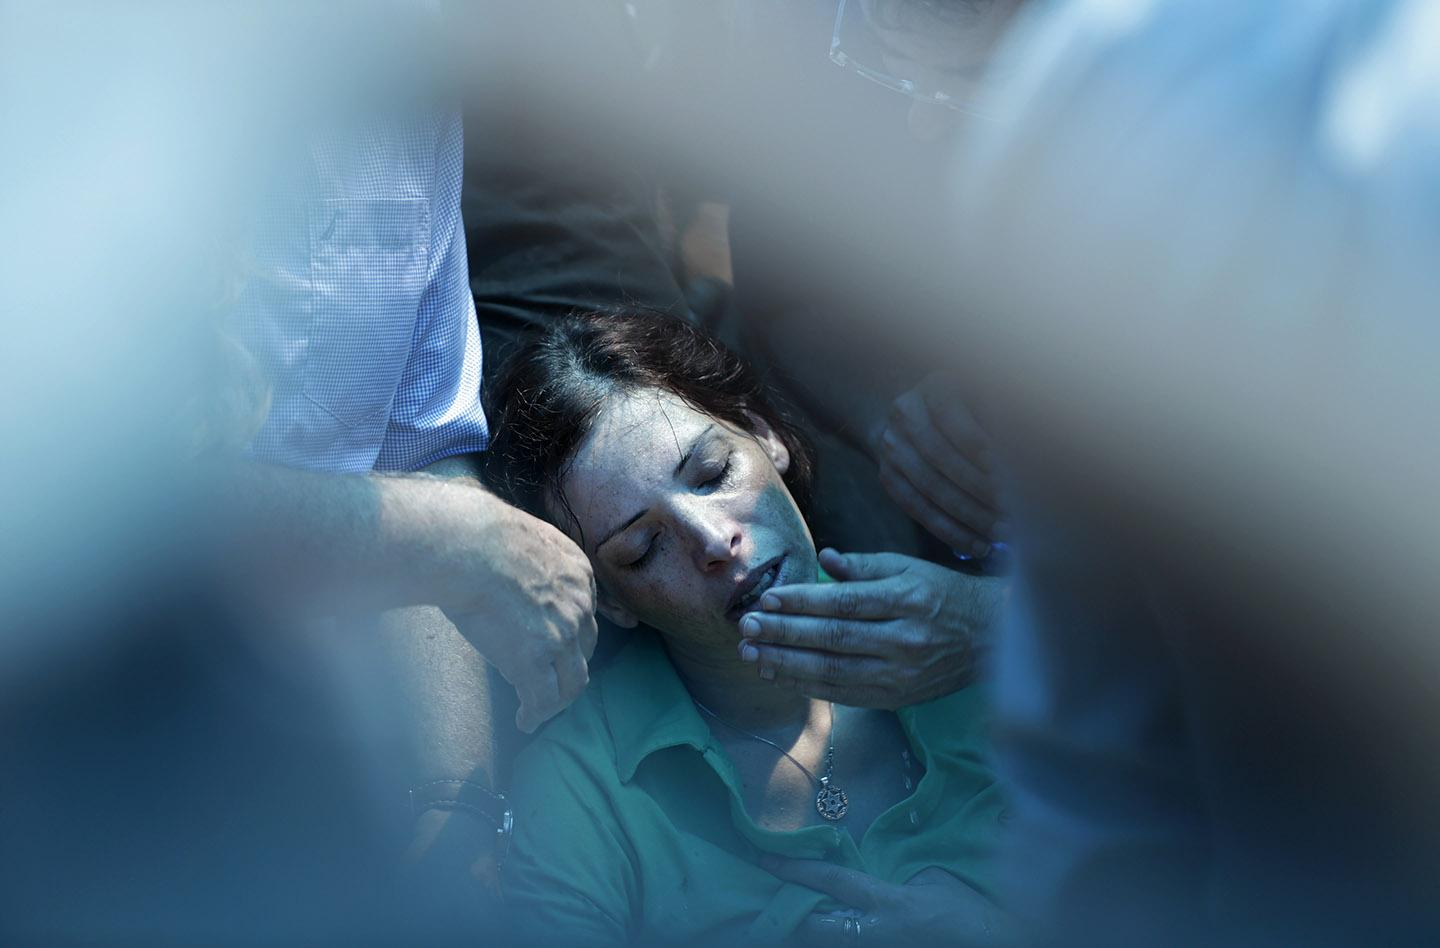 Dana, the sister of Israeli soldier Tsafrir Bar-Or, mourns during his funeral.